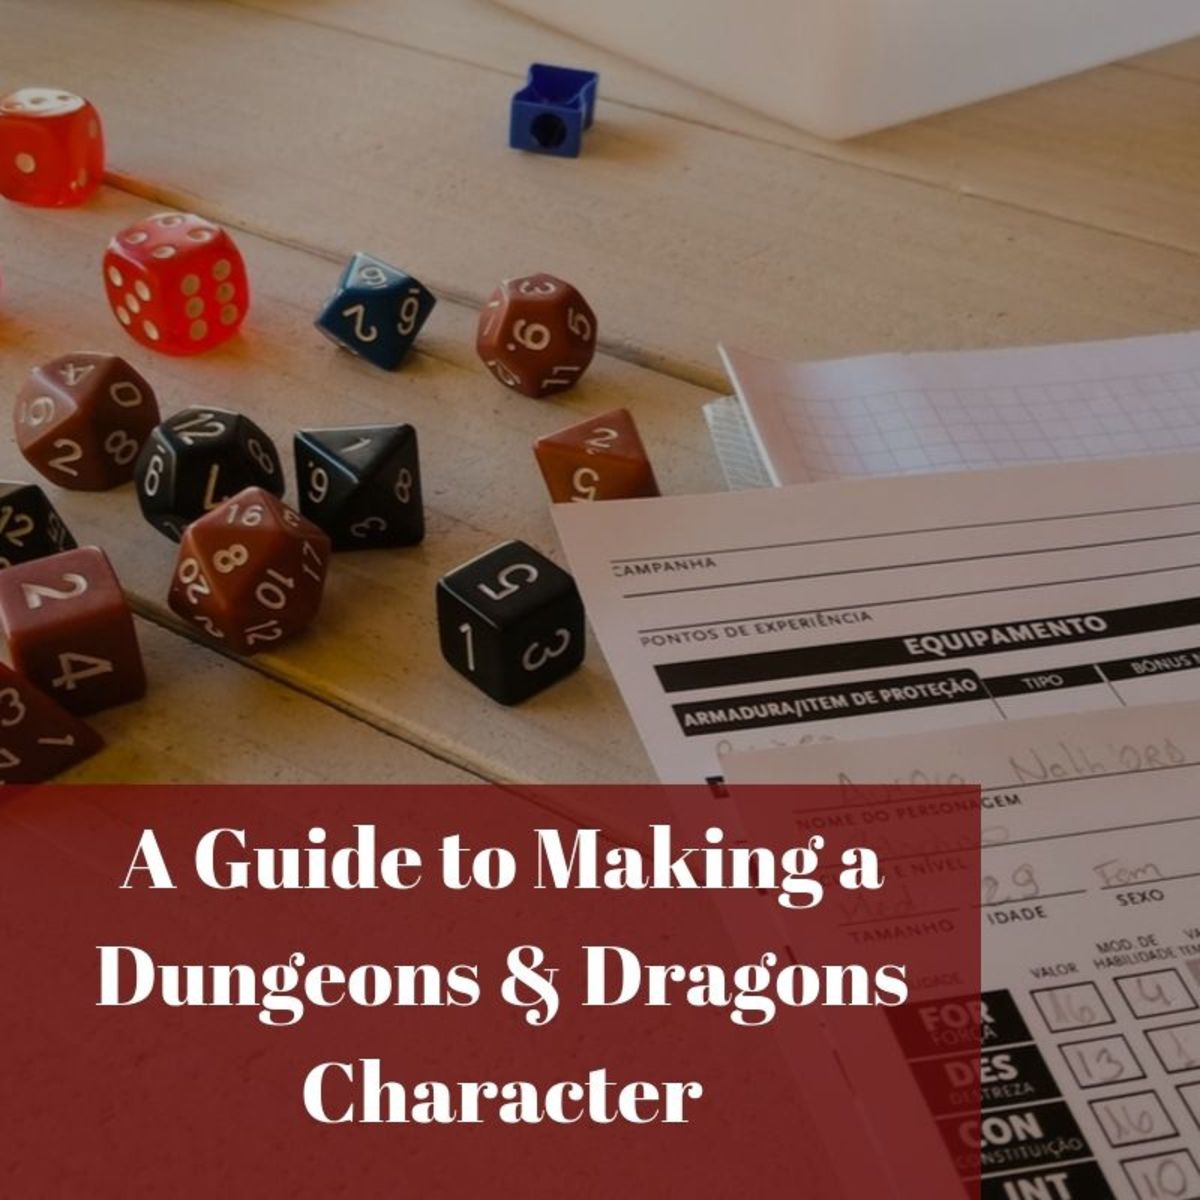 Building a character means including choosing a race or class, learning stats, picking skills, getting the right equipment, and creating a character description.